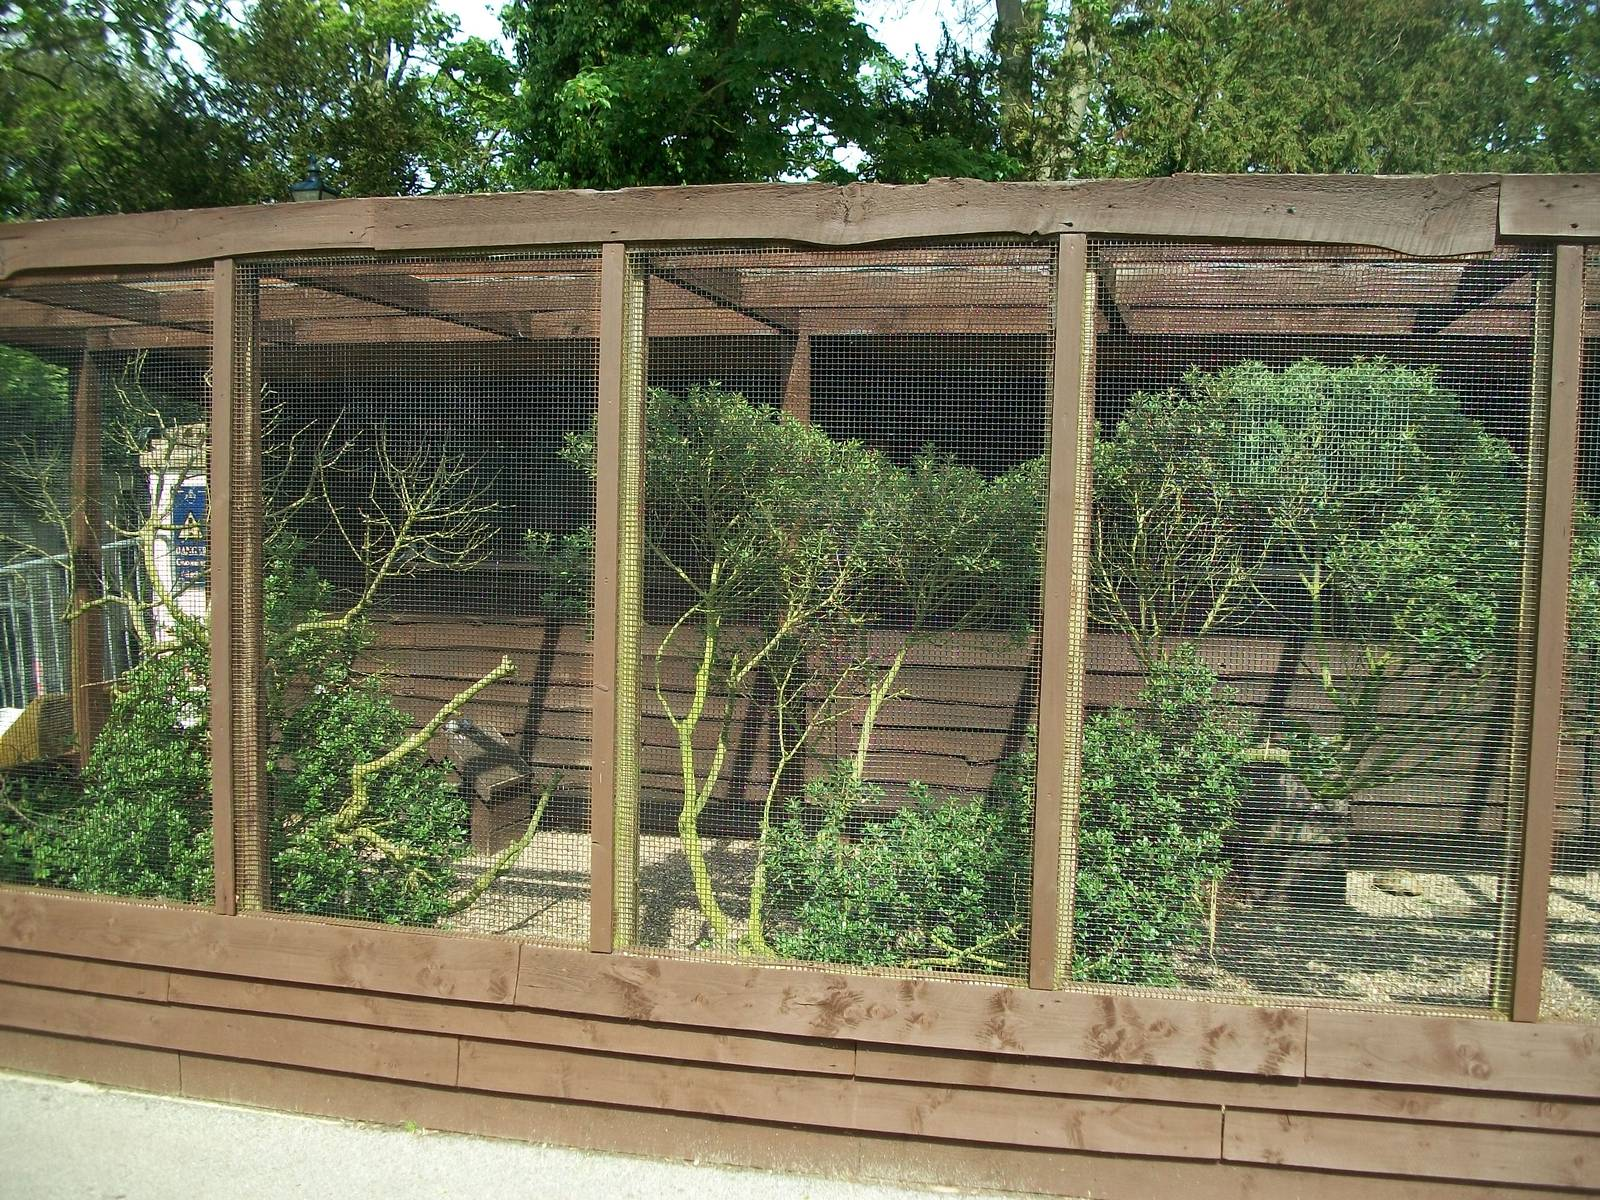 Shrubbery Pruned In The Aviary For Finches 23rd May 2014